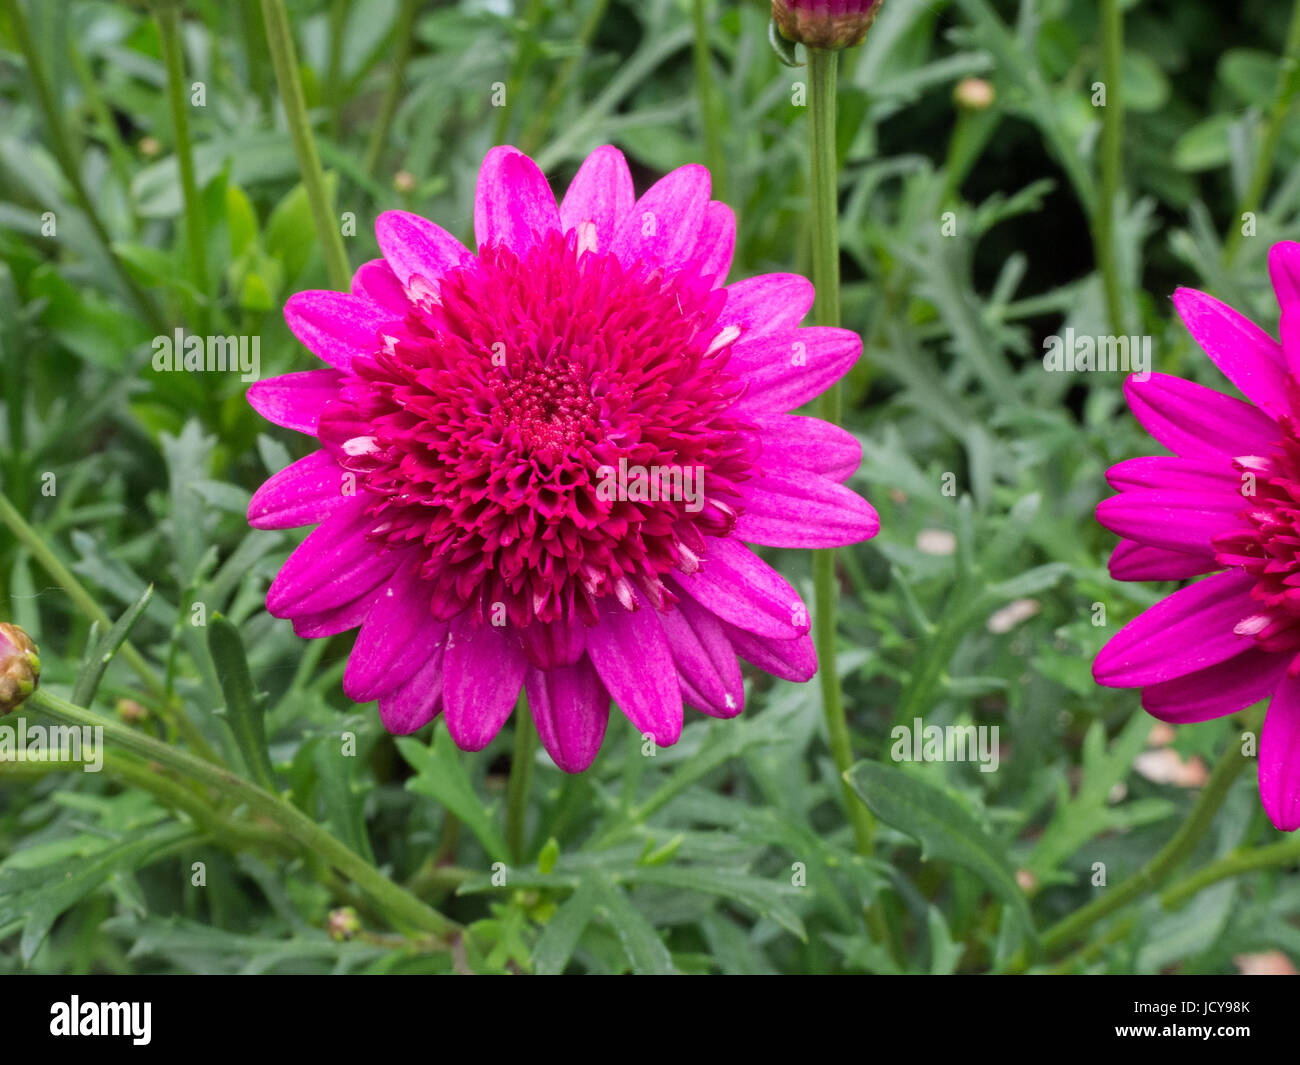 Close up of a single flower of Argyranthemum Madeira Crested Hot Pink - Stock Image